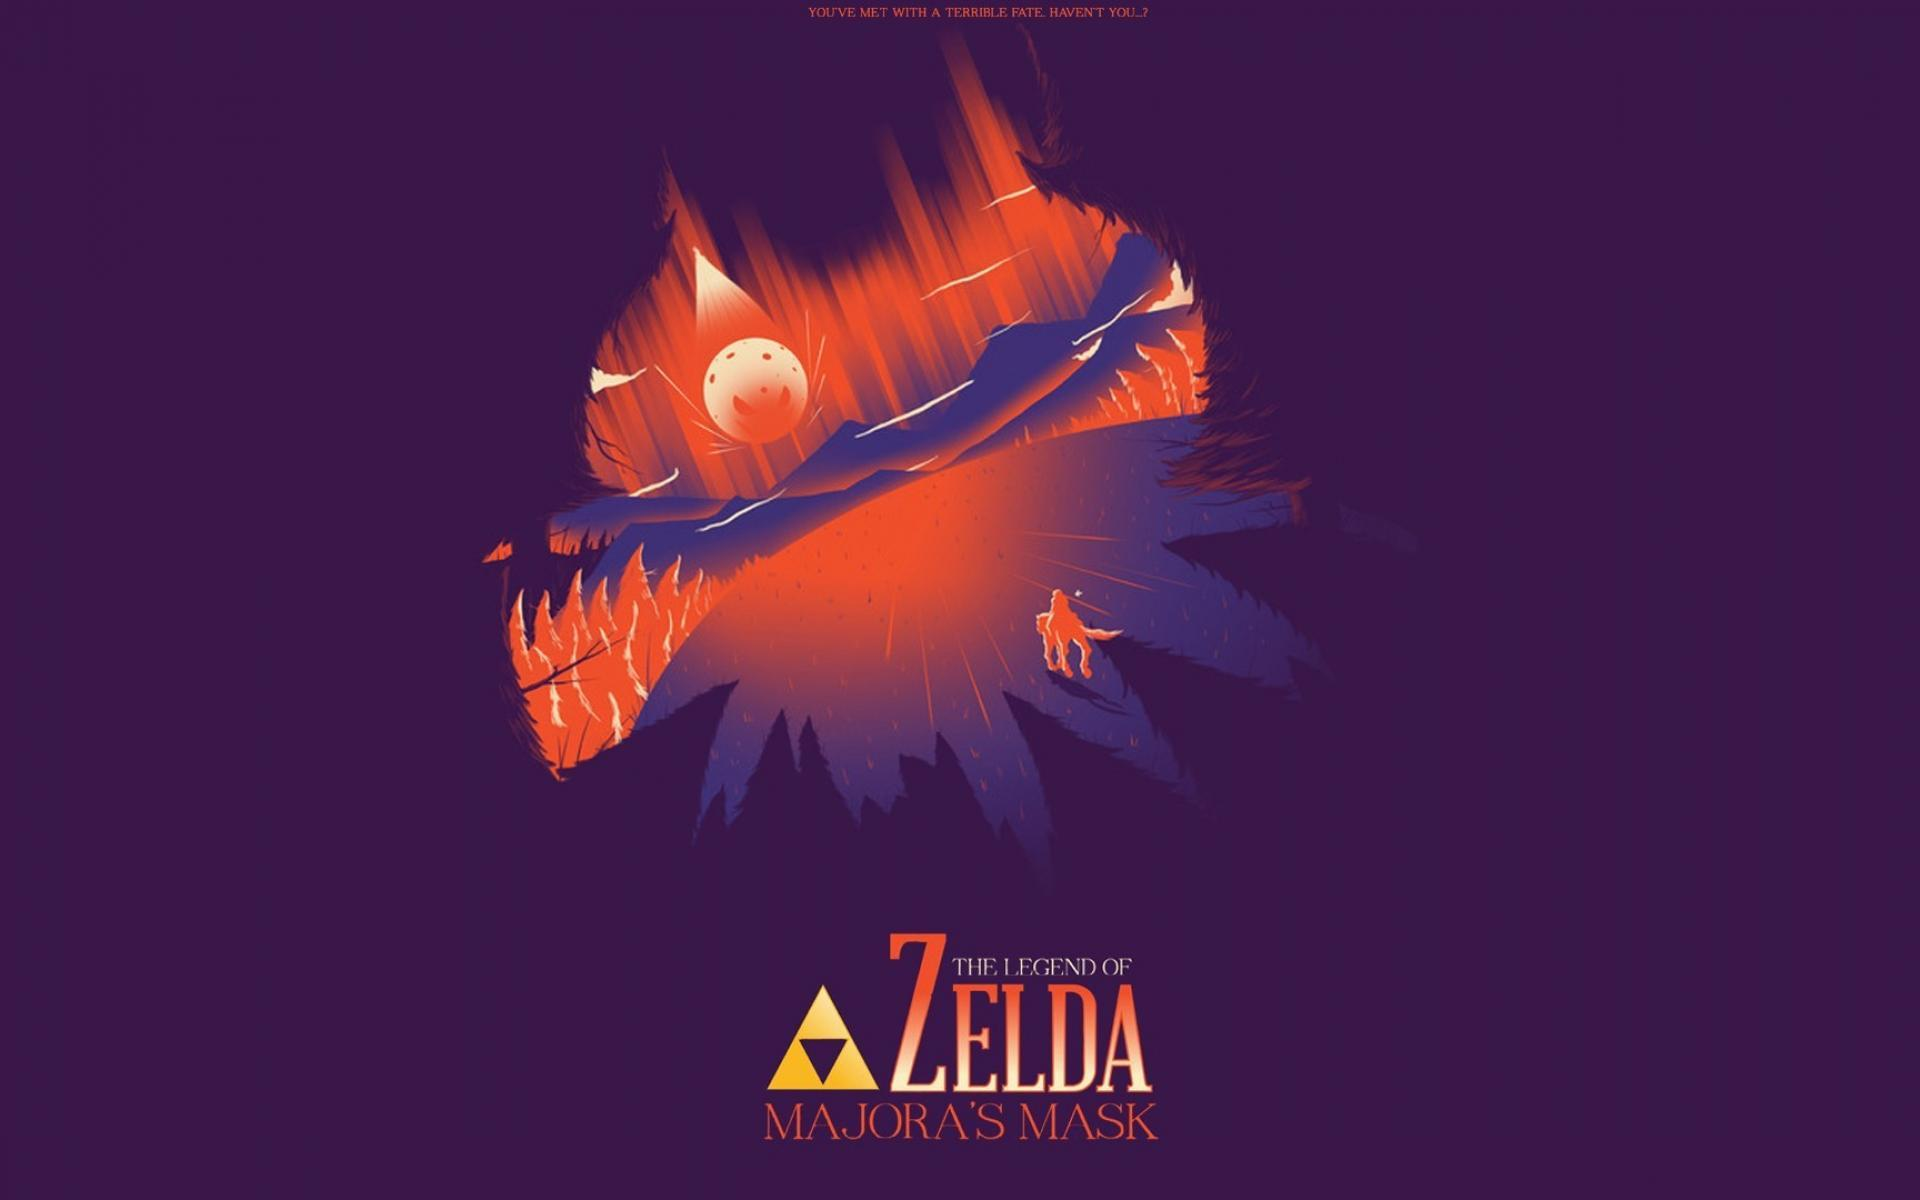 Art 64 zelda: majoras mask shigeru miyamoto wallpapers